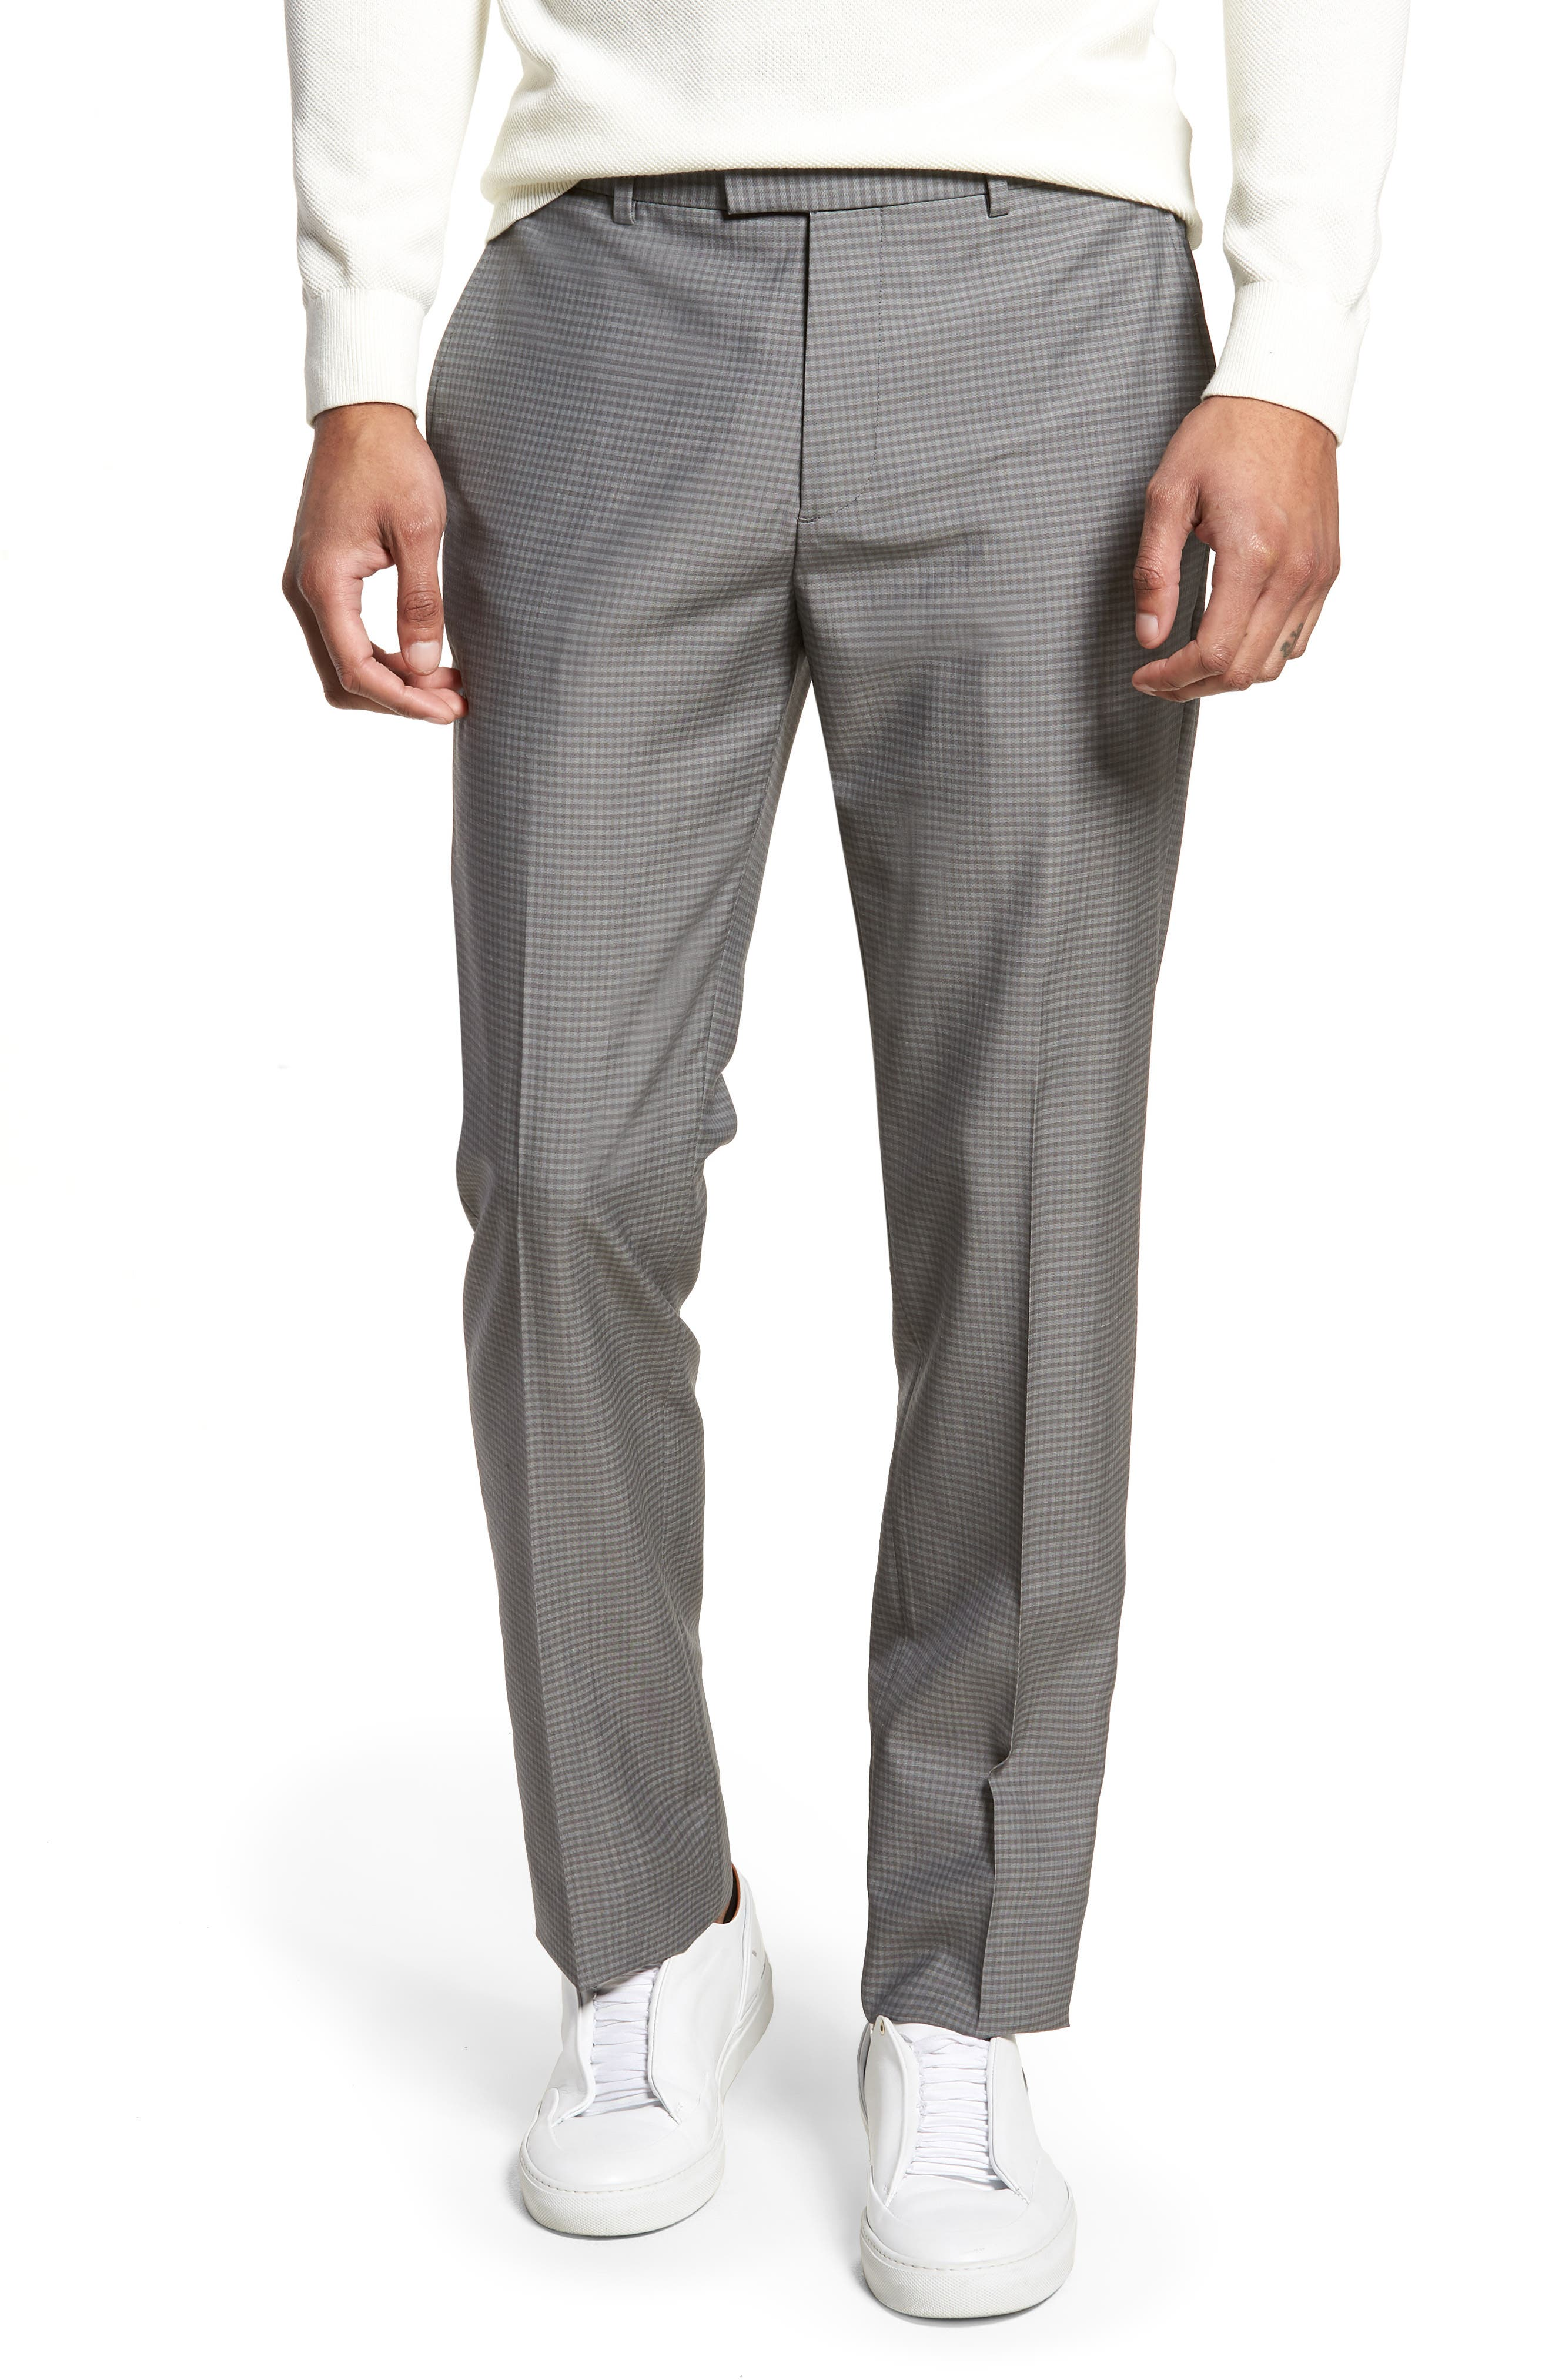 Marlo Flat Front Check Wool Trousers,                             Main thumbnail 1, color,                             023